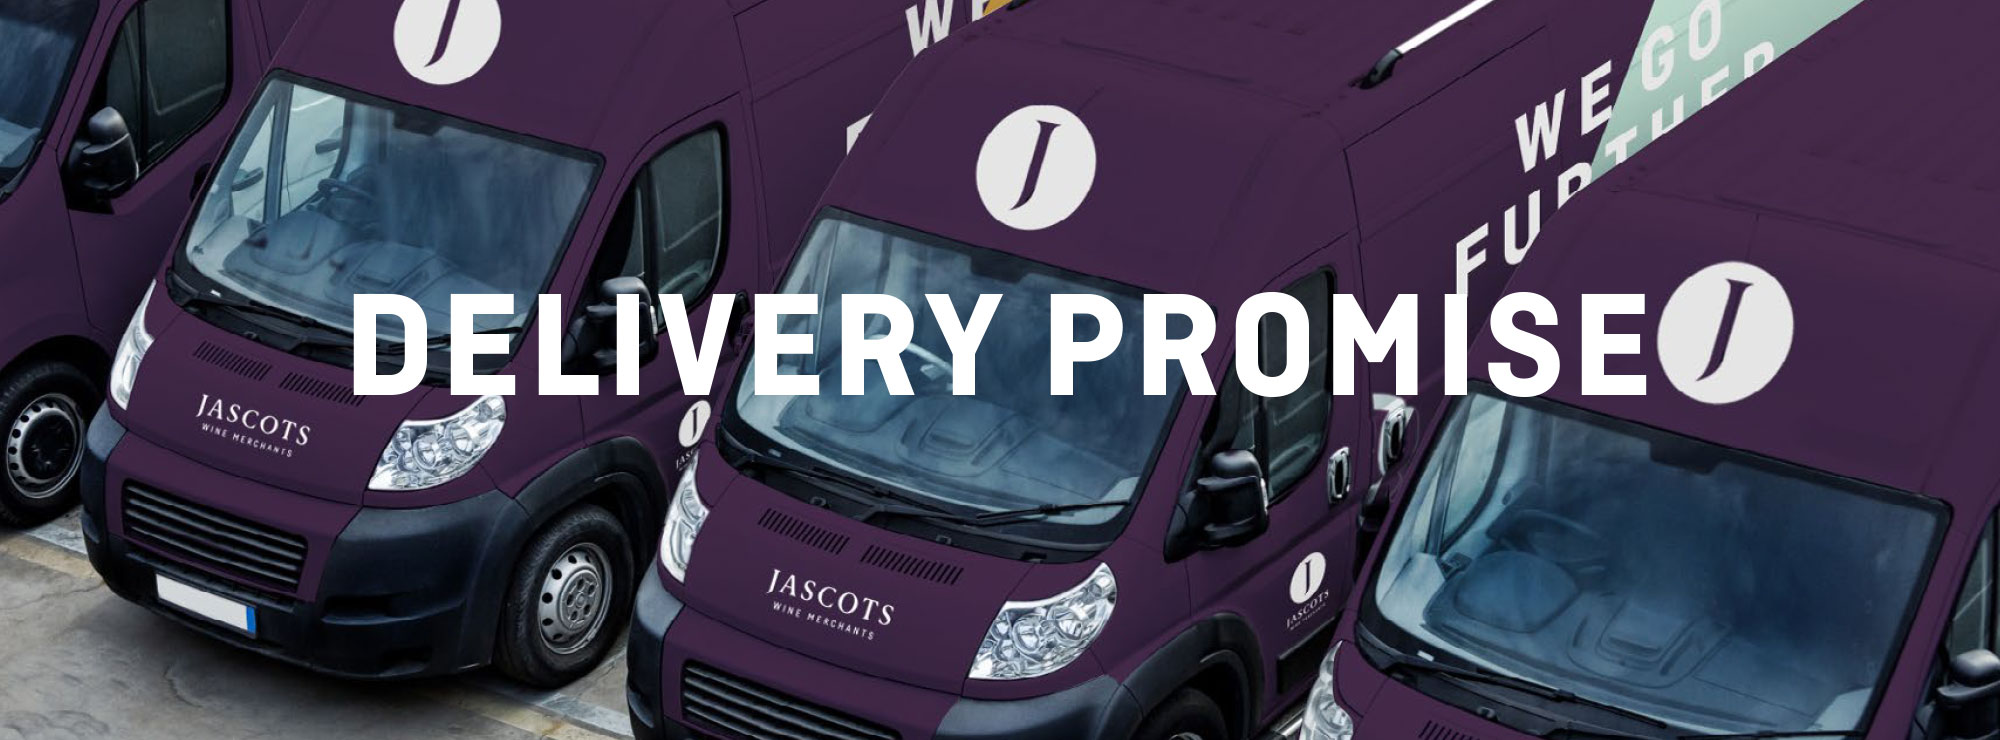 Delivery Promise